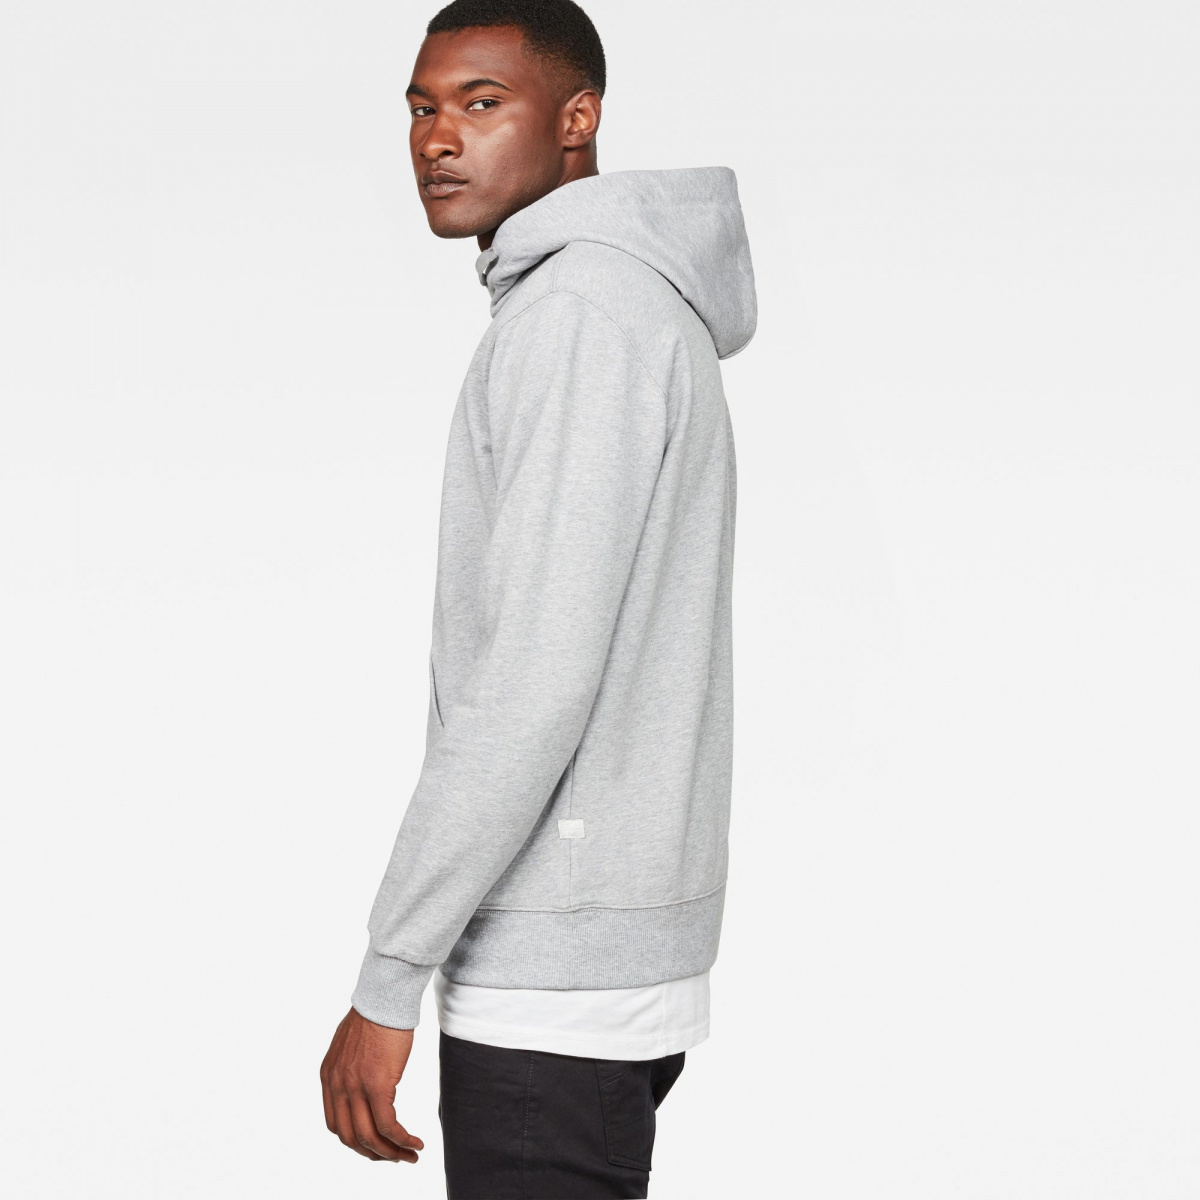 9fe834a3c3493 Sweat à capuche homme gris G-Star Raw- CCV Mode